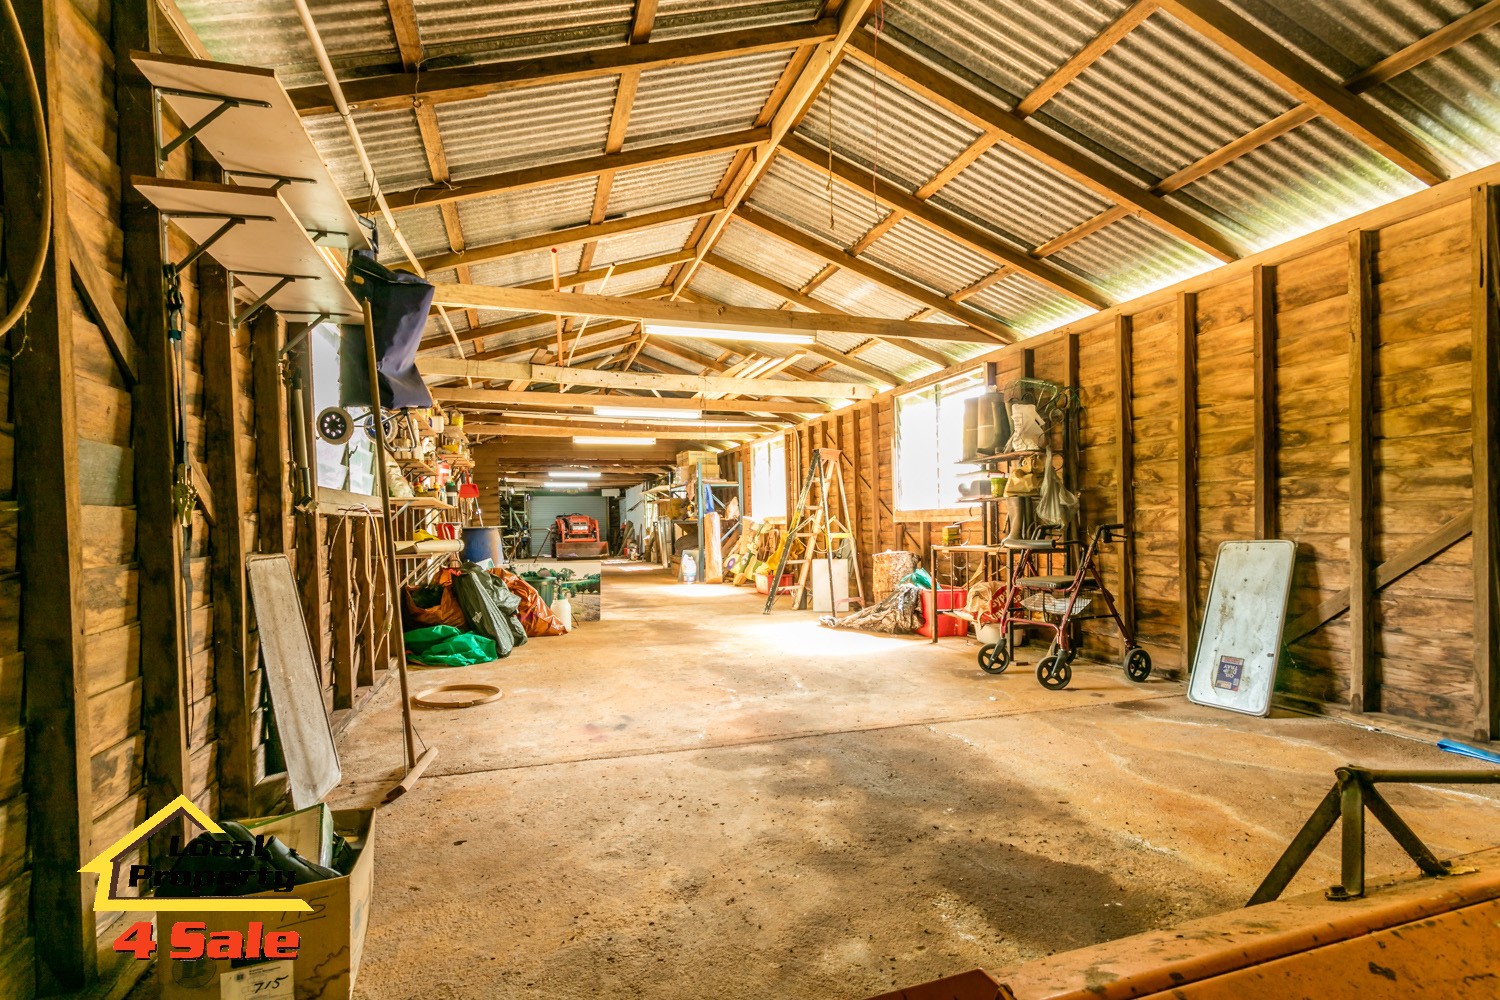 182 Long Rd Tamborine Mountain - Work shed